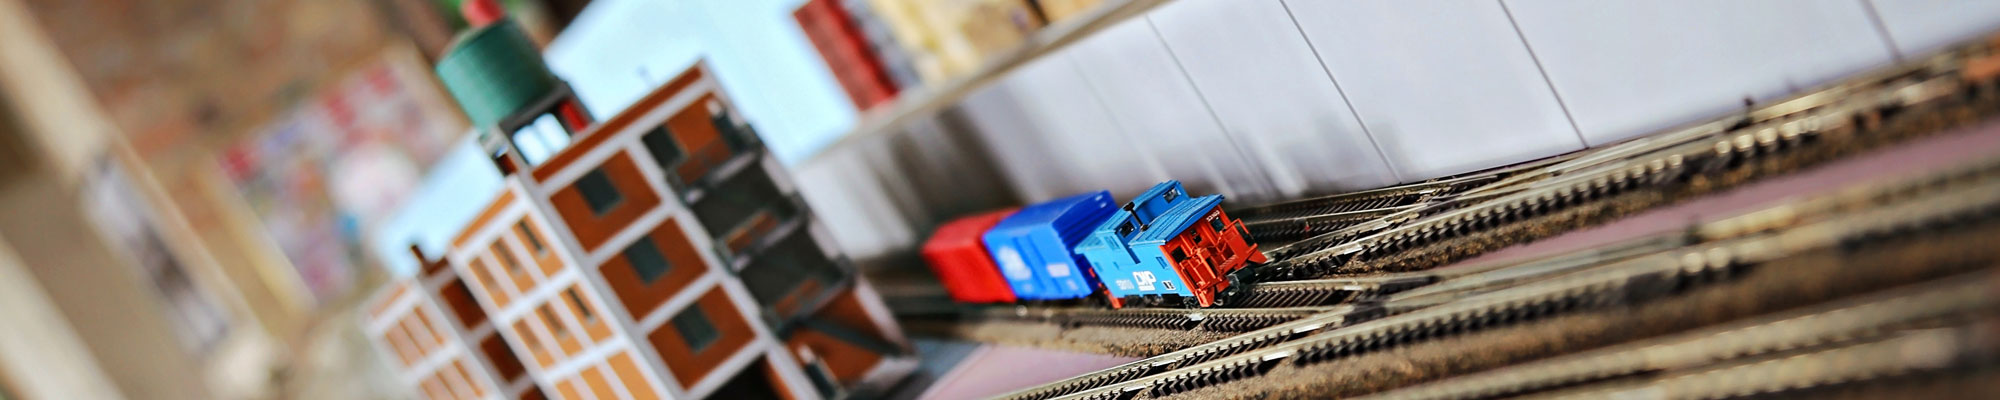 img-trainset-wide